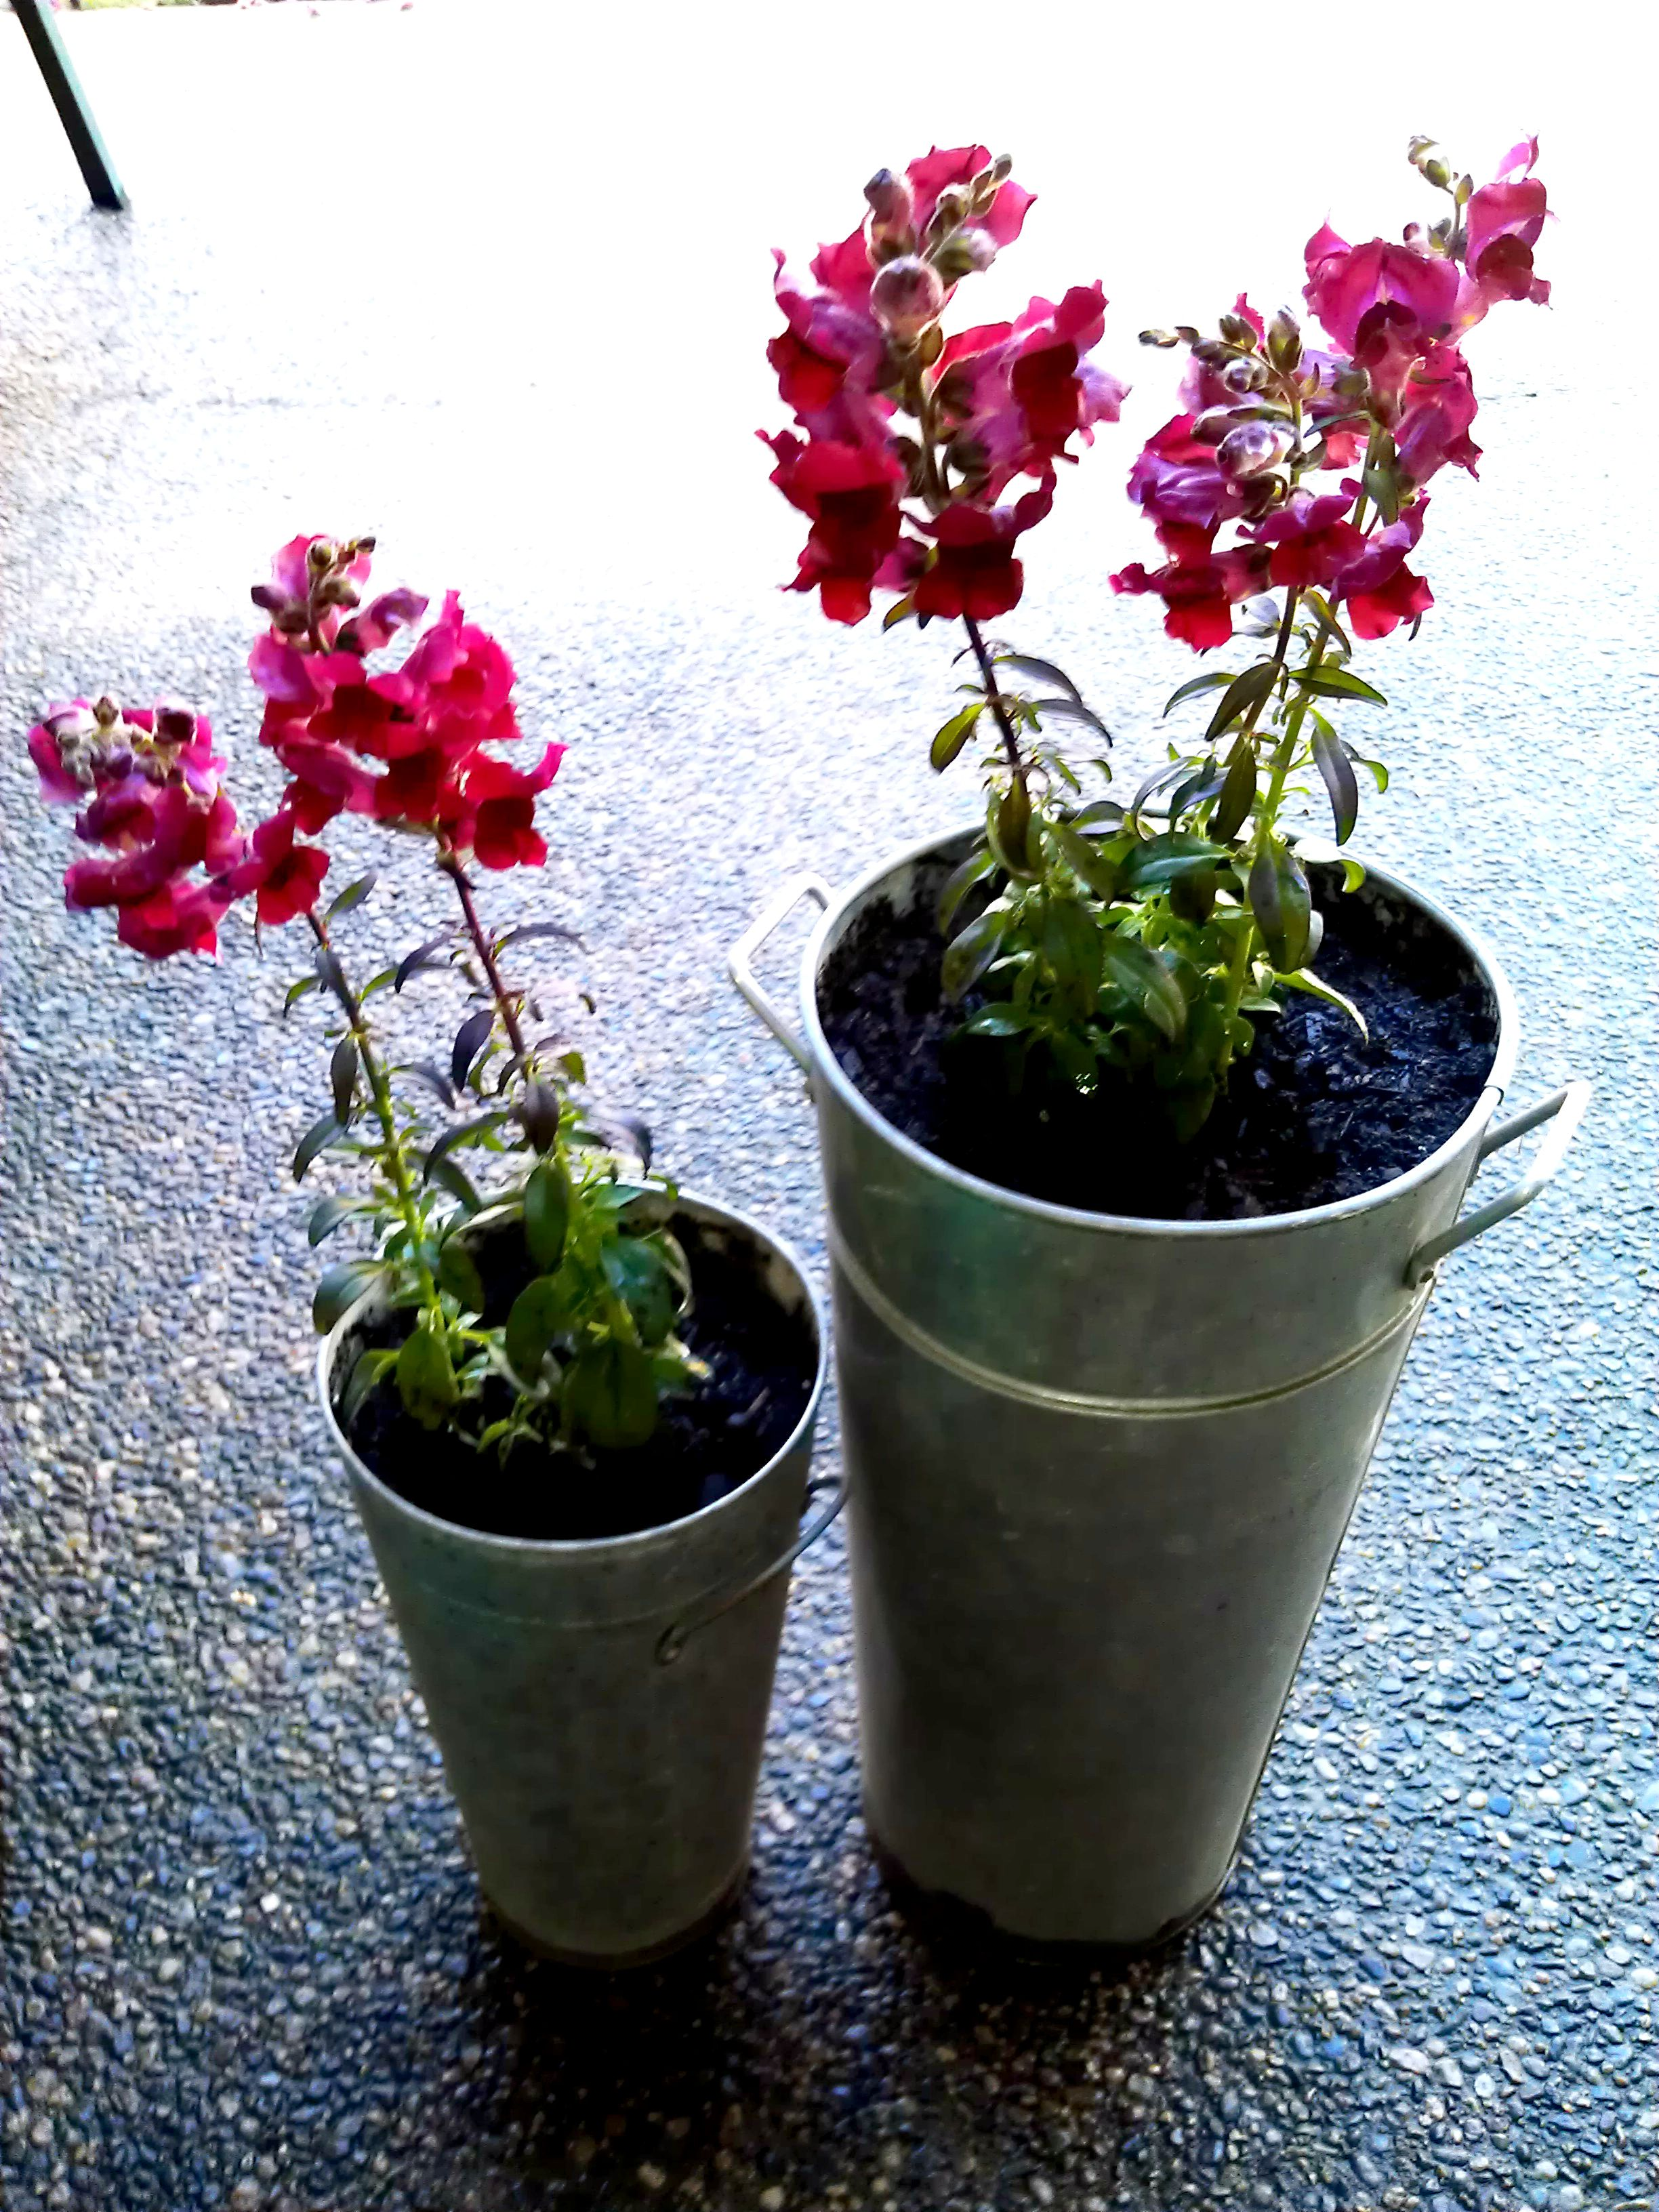 Snapdragon Annual flowers, Planter pots, Home and garden